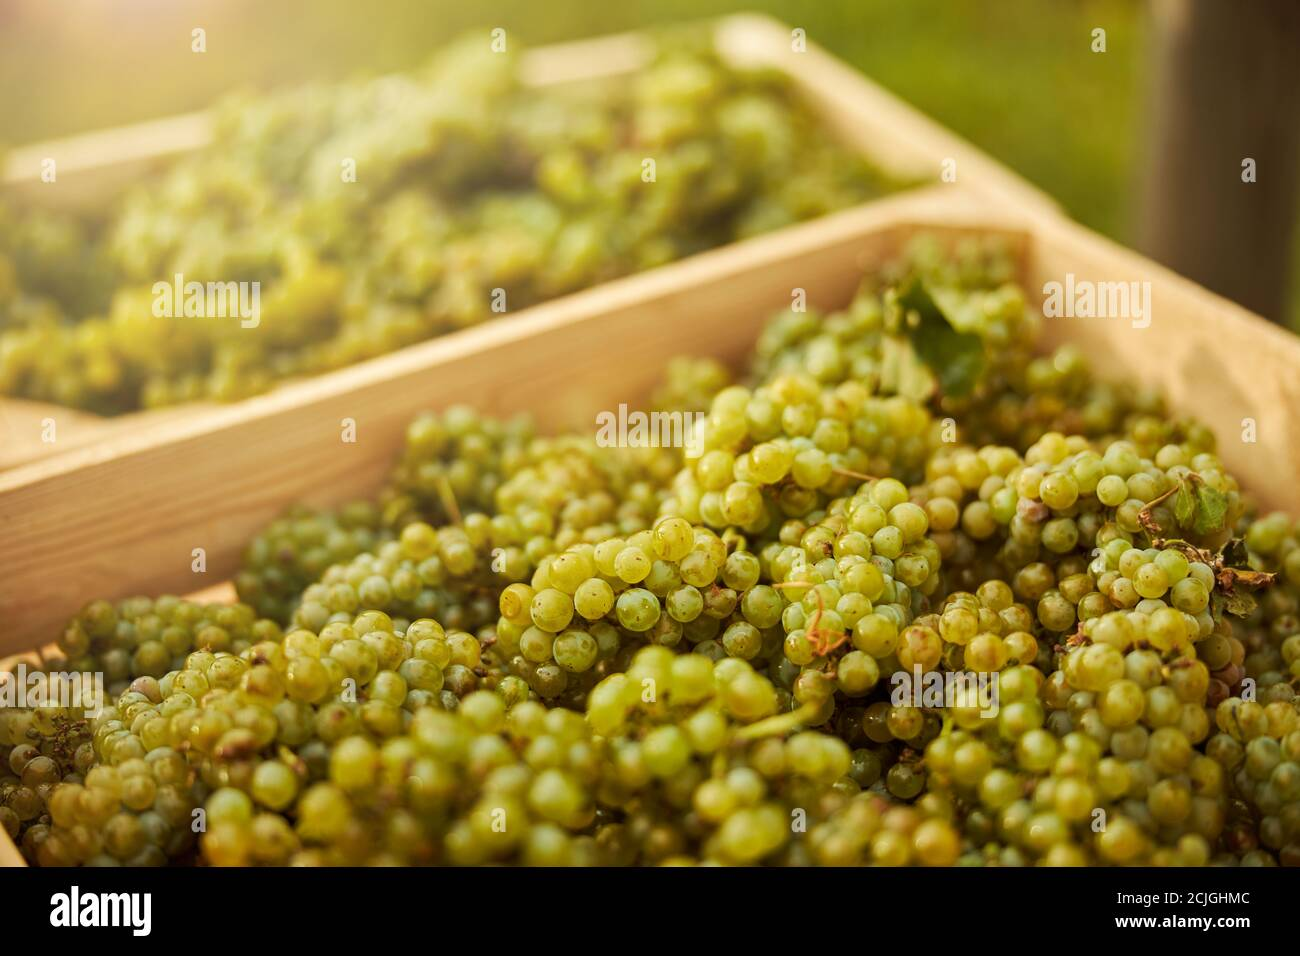 Freshly-harvested ripe white grapes in wooden boxes Stock Photo